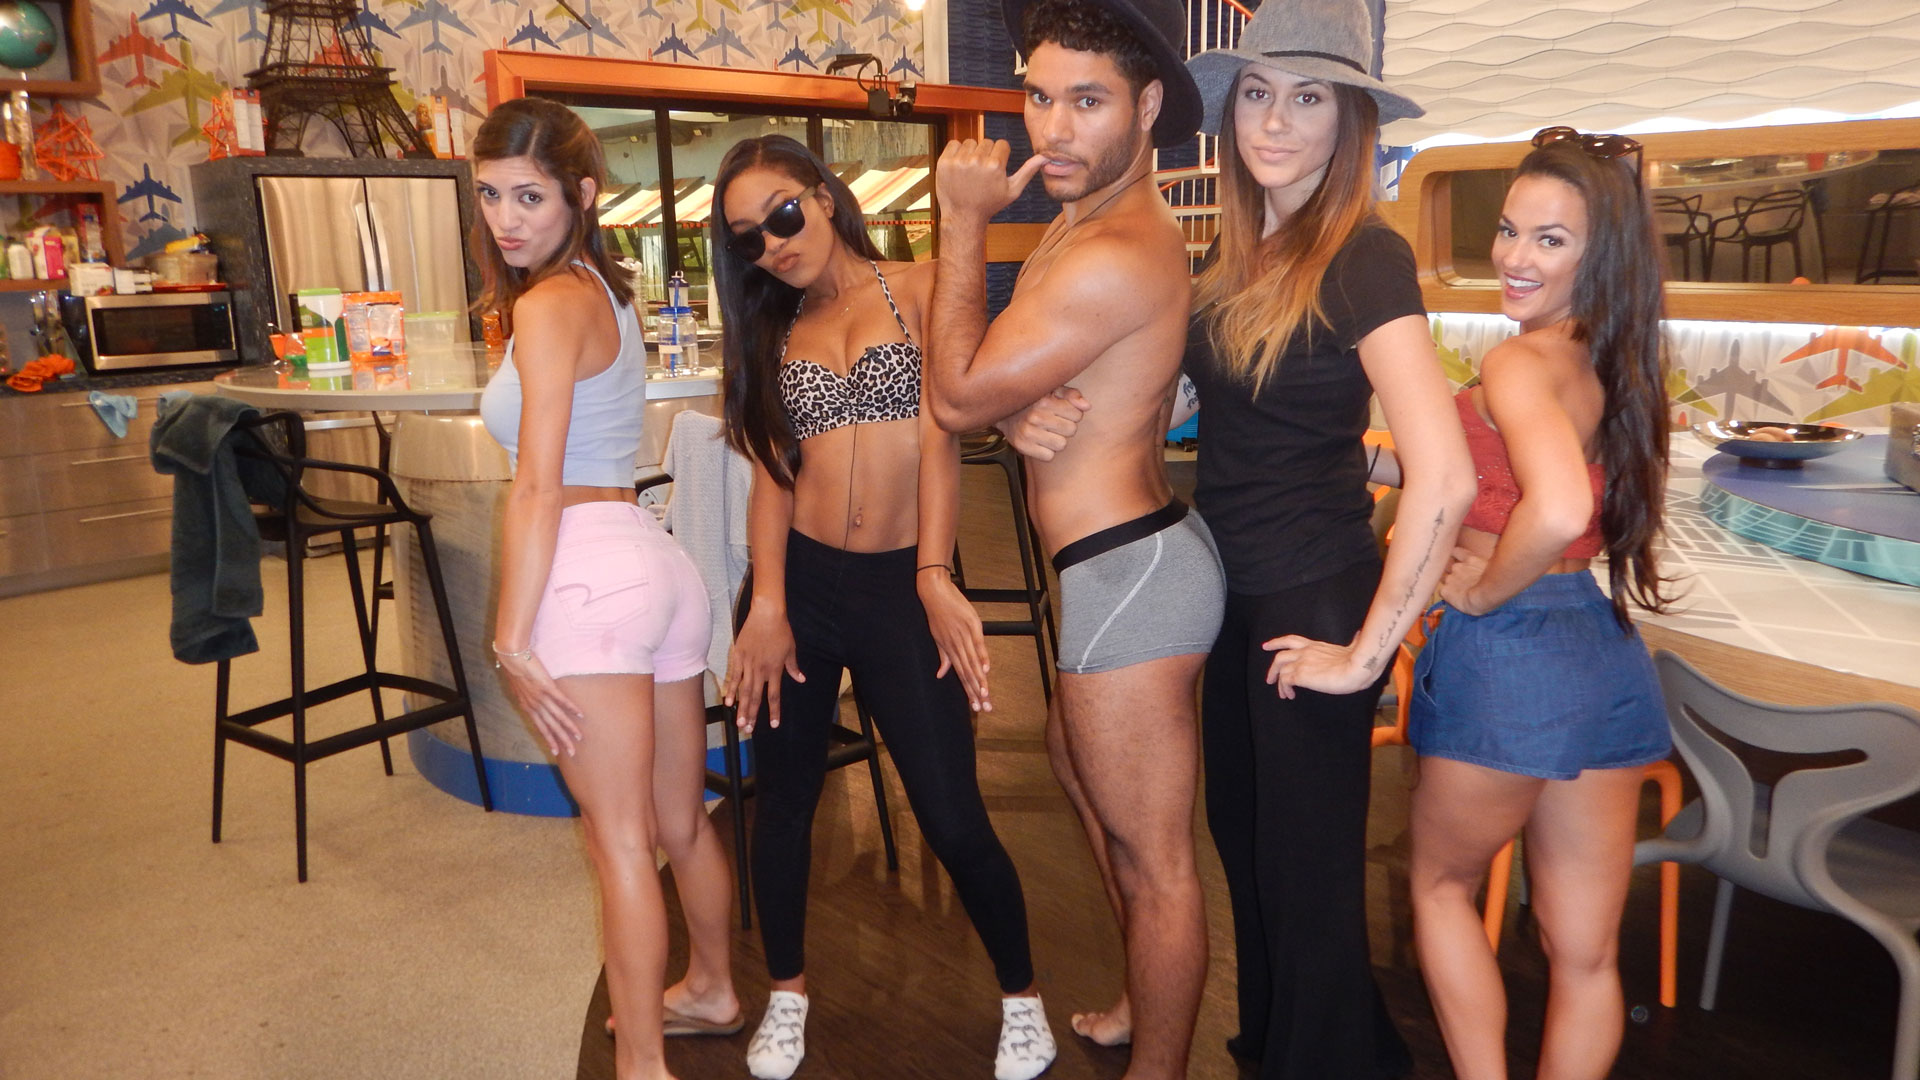 These BB18 Houseguests are bootylicious!